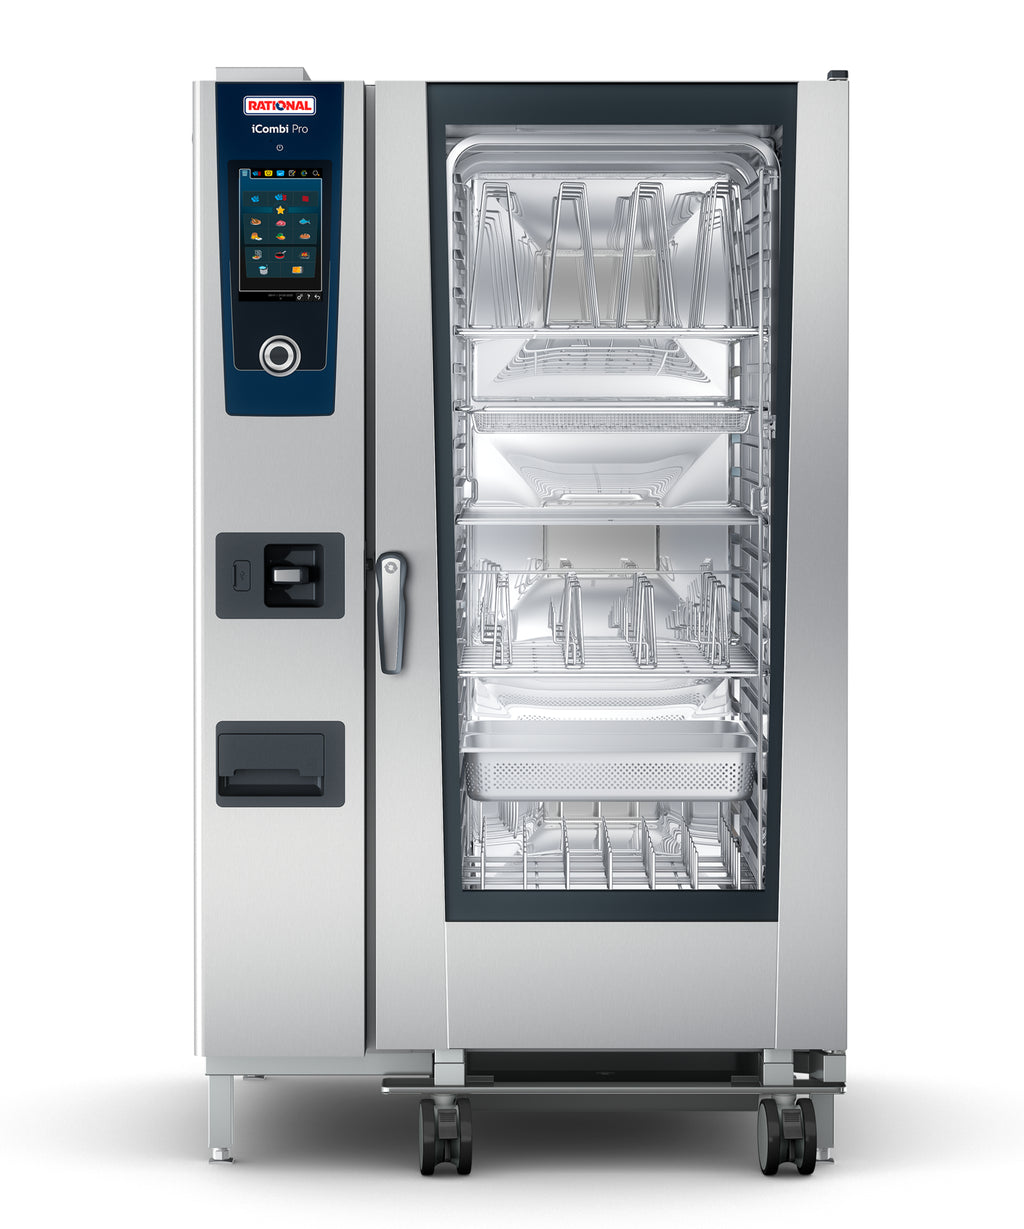 Rational 20 Rack iCombi Pro Electric 20-2/1